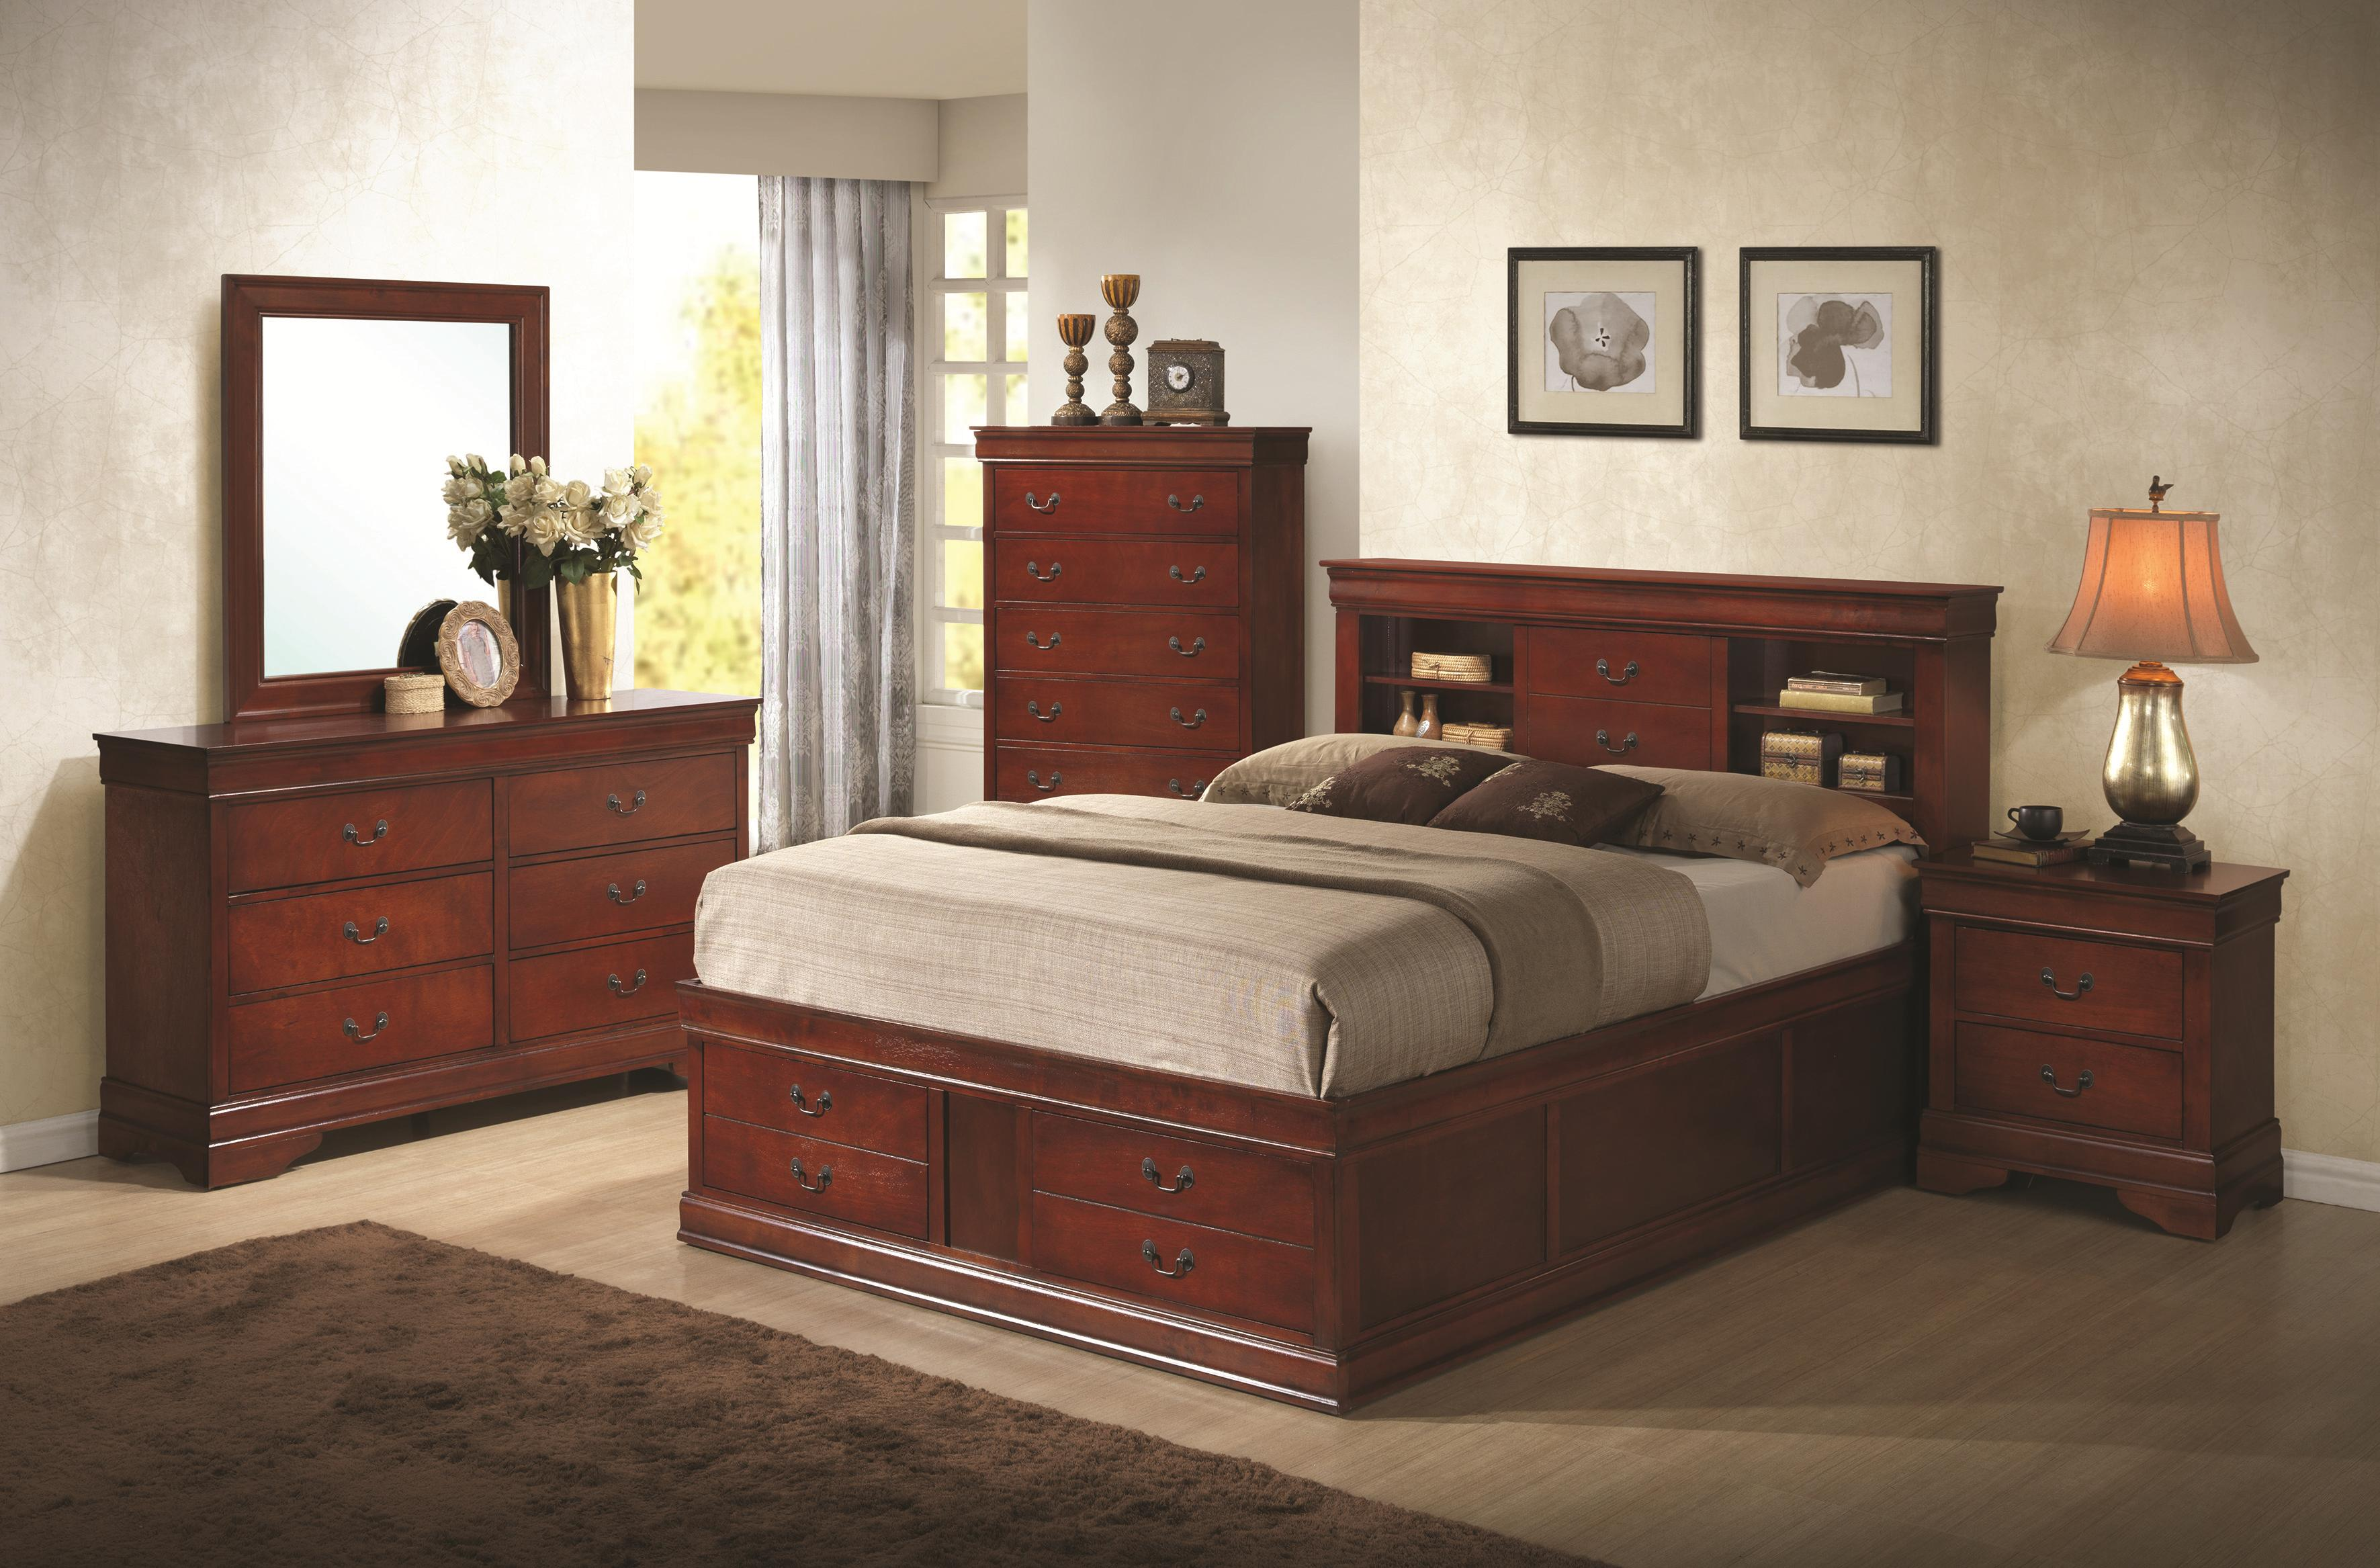 Coaster Louis Philippe Full Sleigh Panel Bed - Coaster Fine Furniture